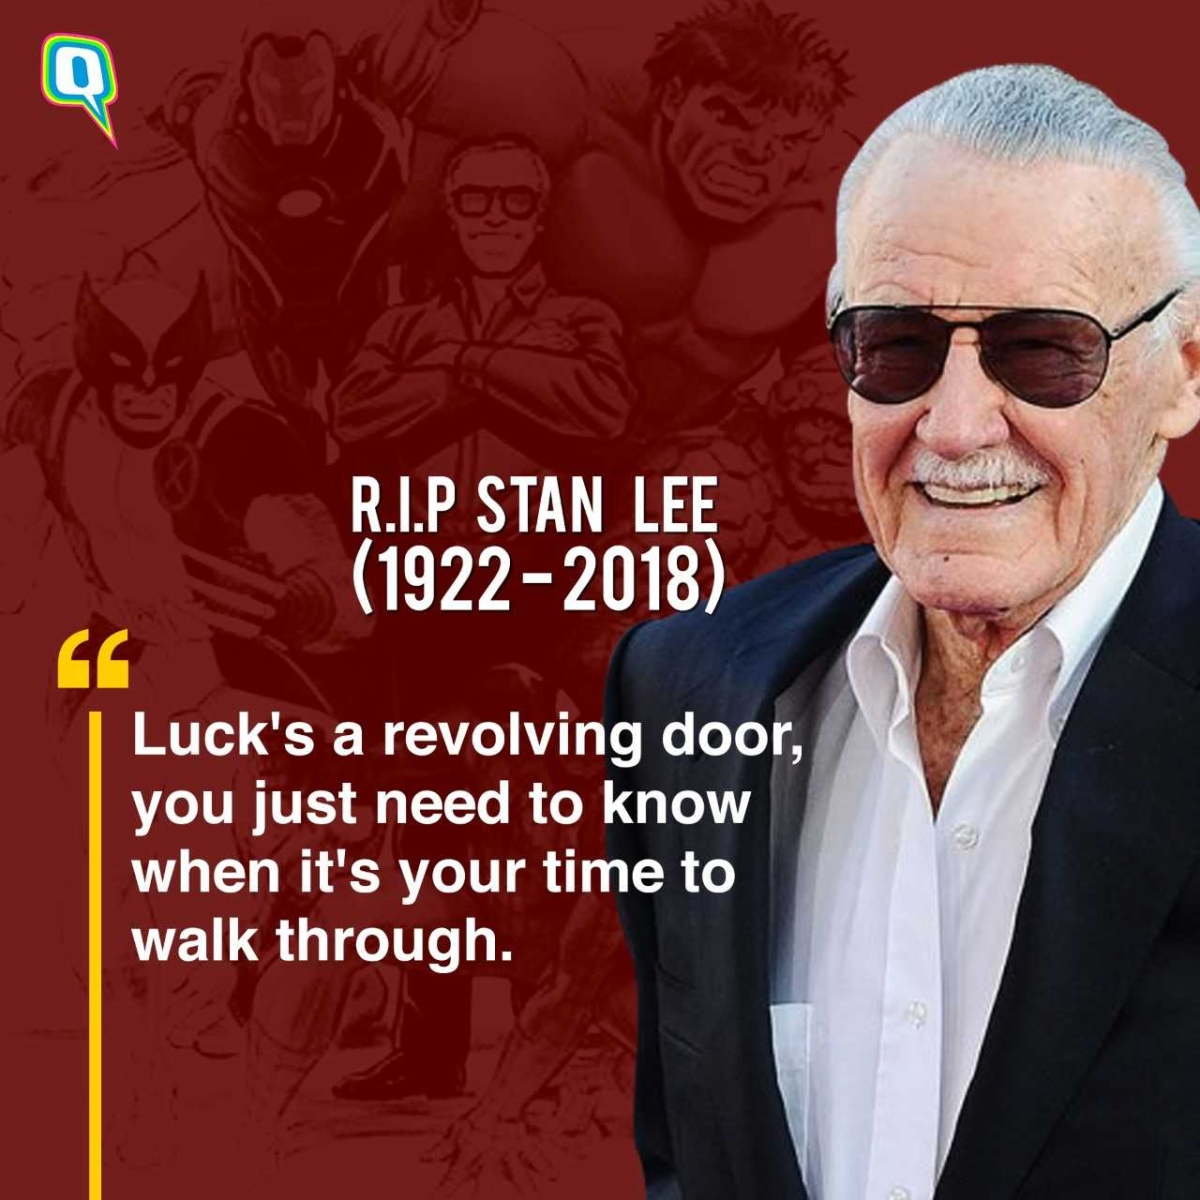 Stan Lee Inspirational Quotes: Best From the Godfather of Marvel Comics